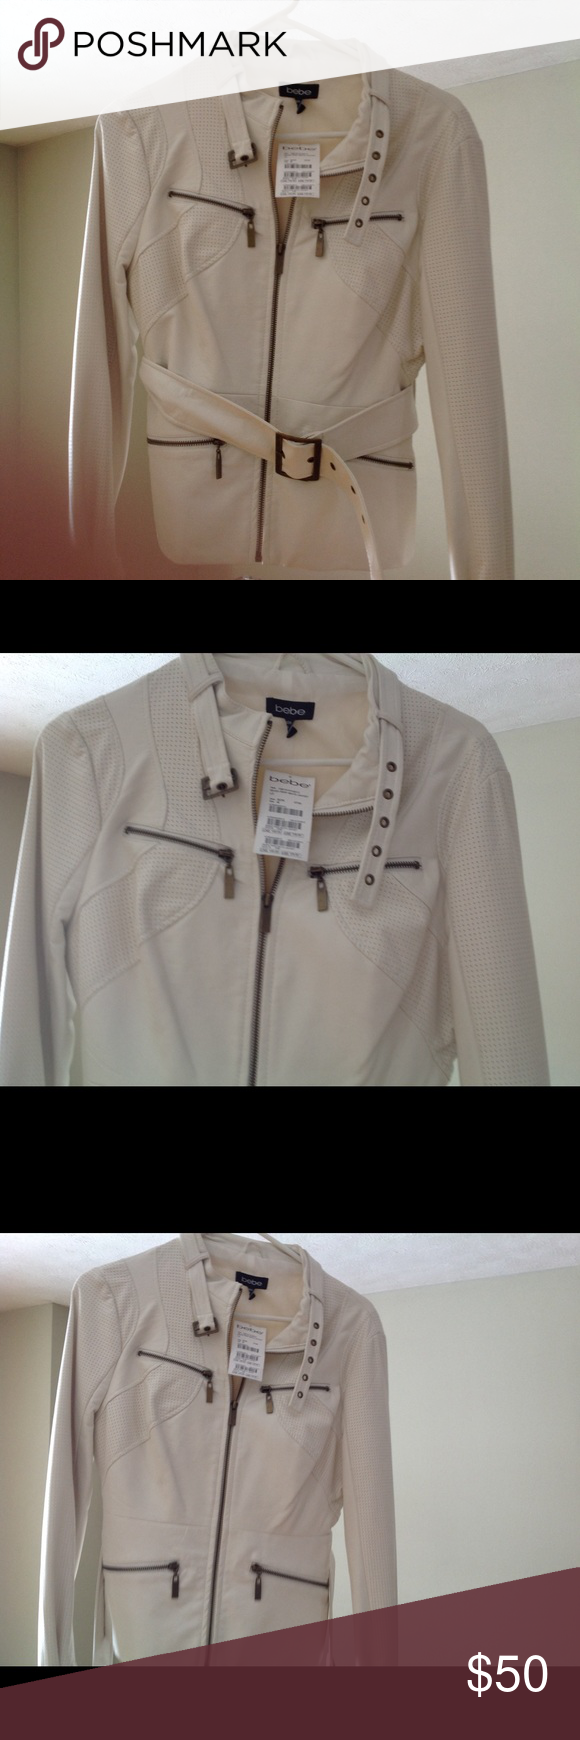 New Bebe faux leather motorcycle jacket off white Faux